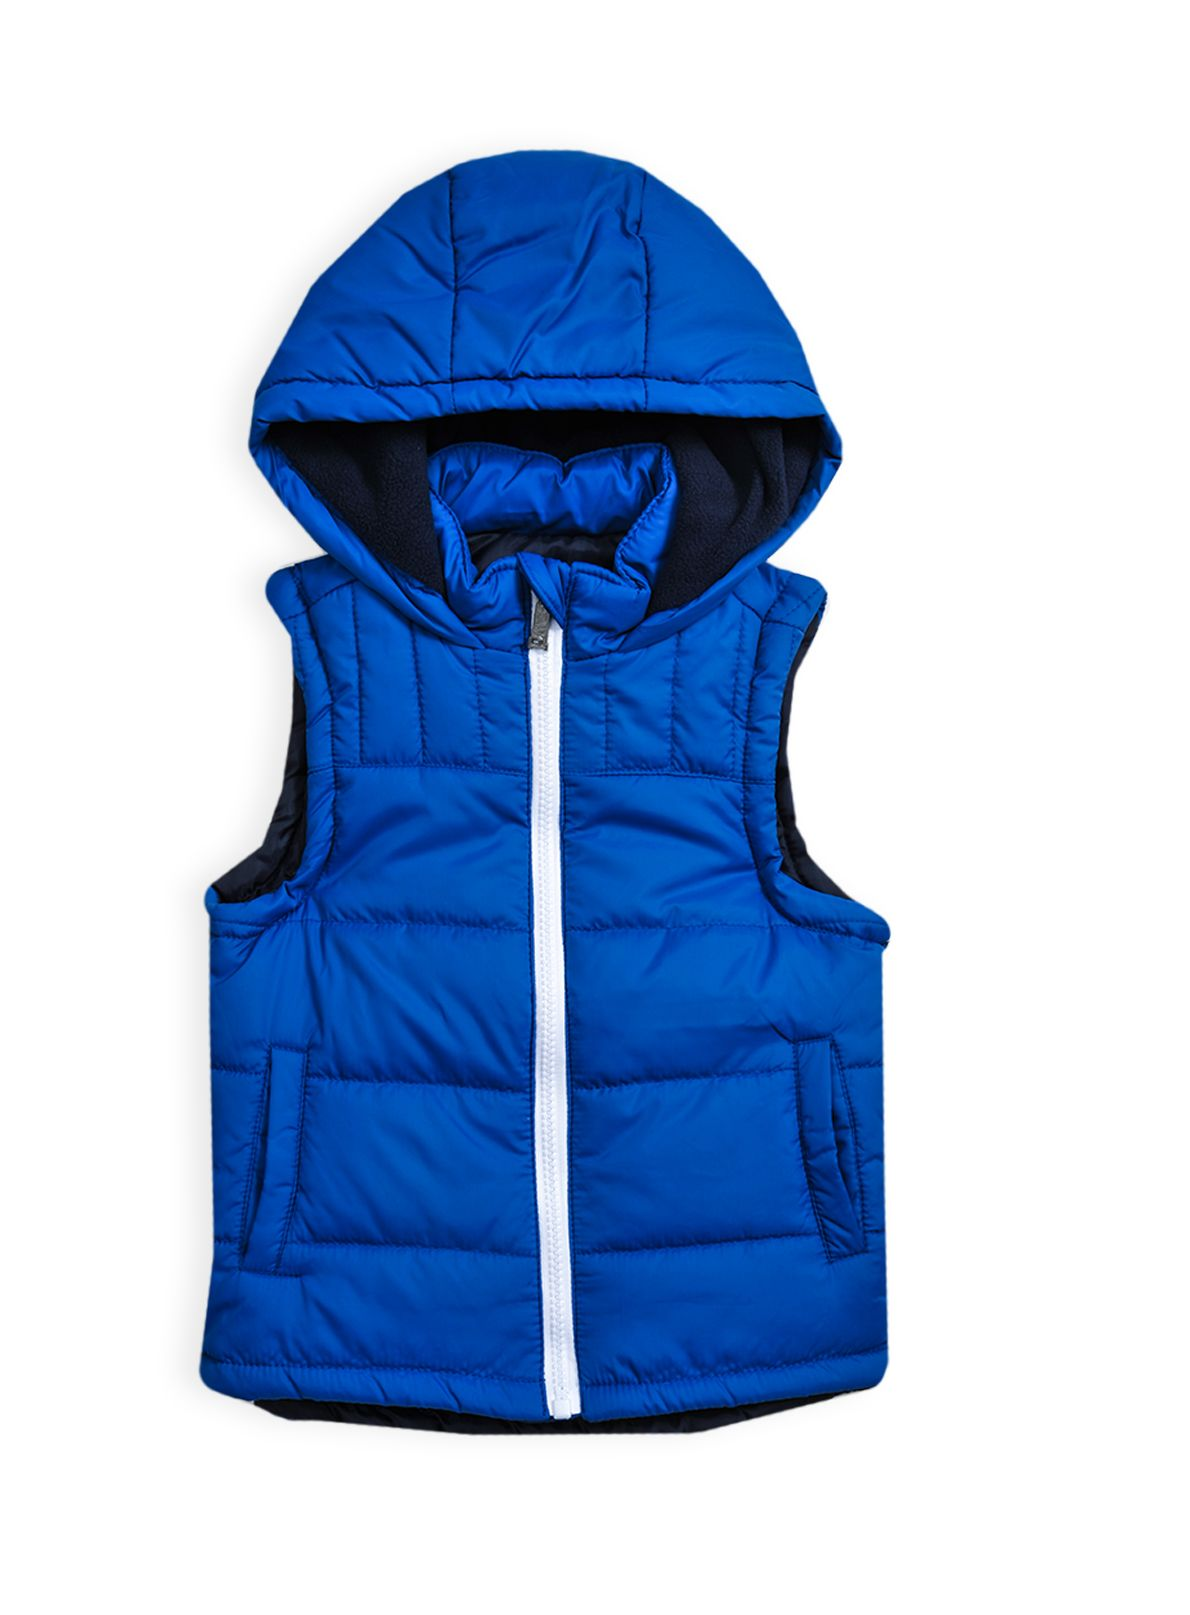 Boys hooded puffer vest